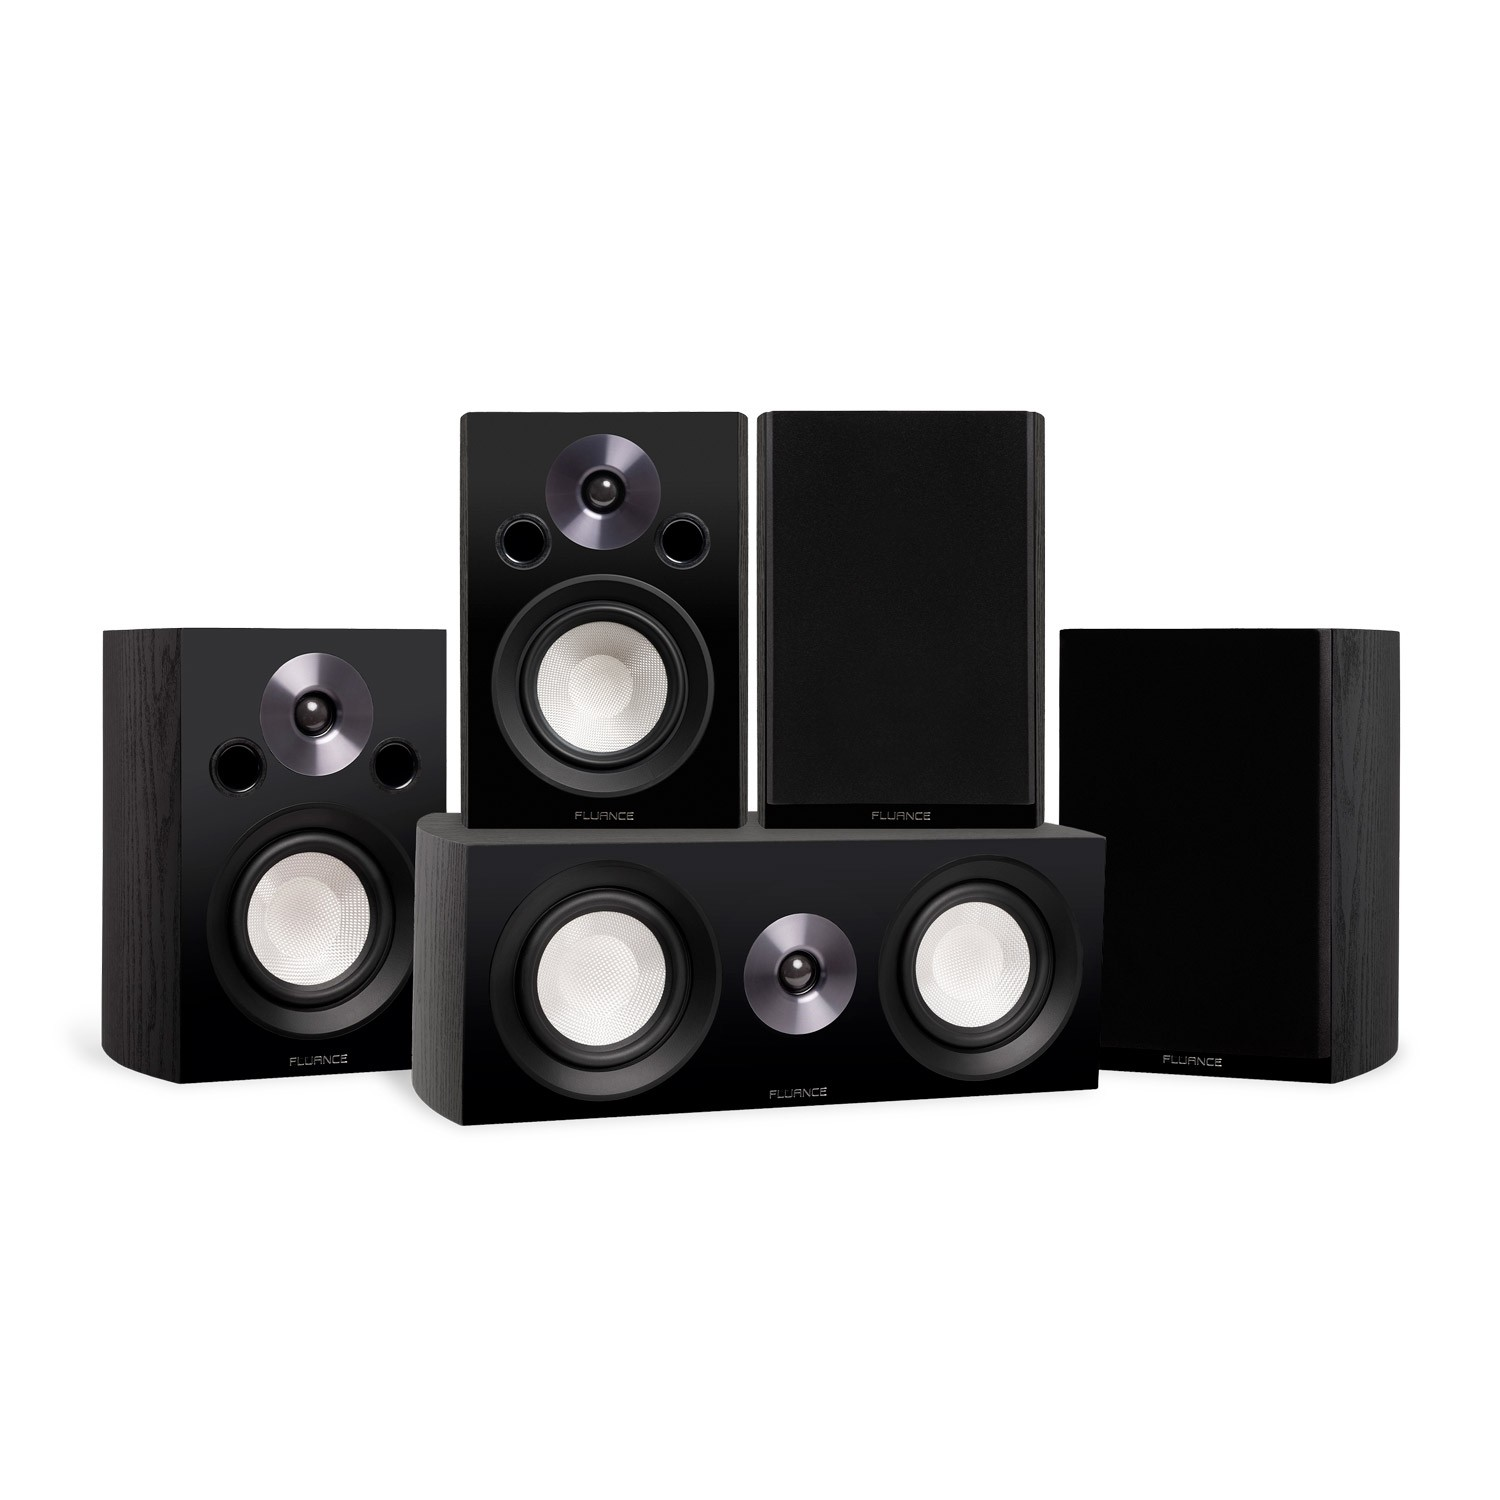 Reference Compact Surround Sound Home Theater 5.0 Channel Speaker System